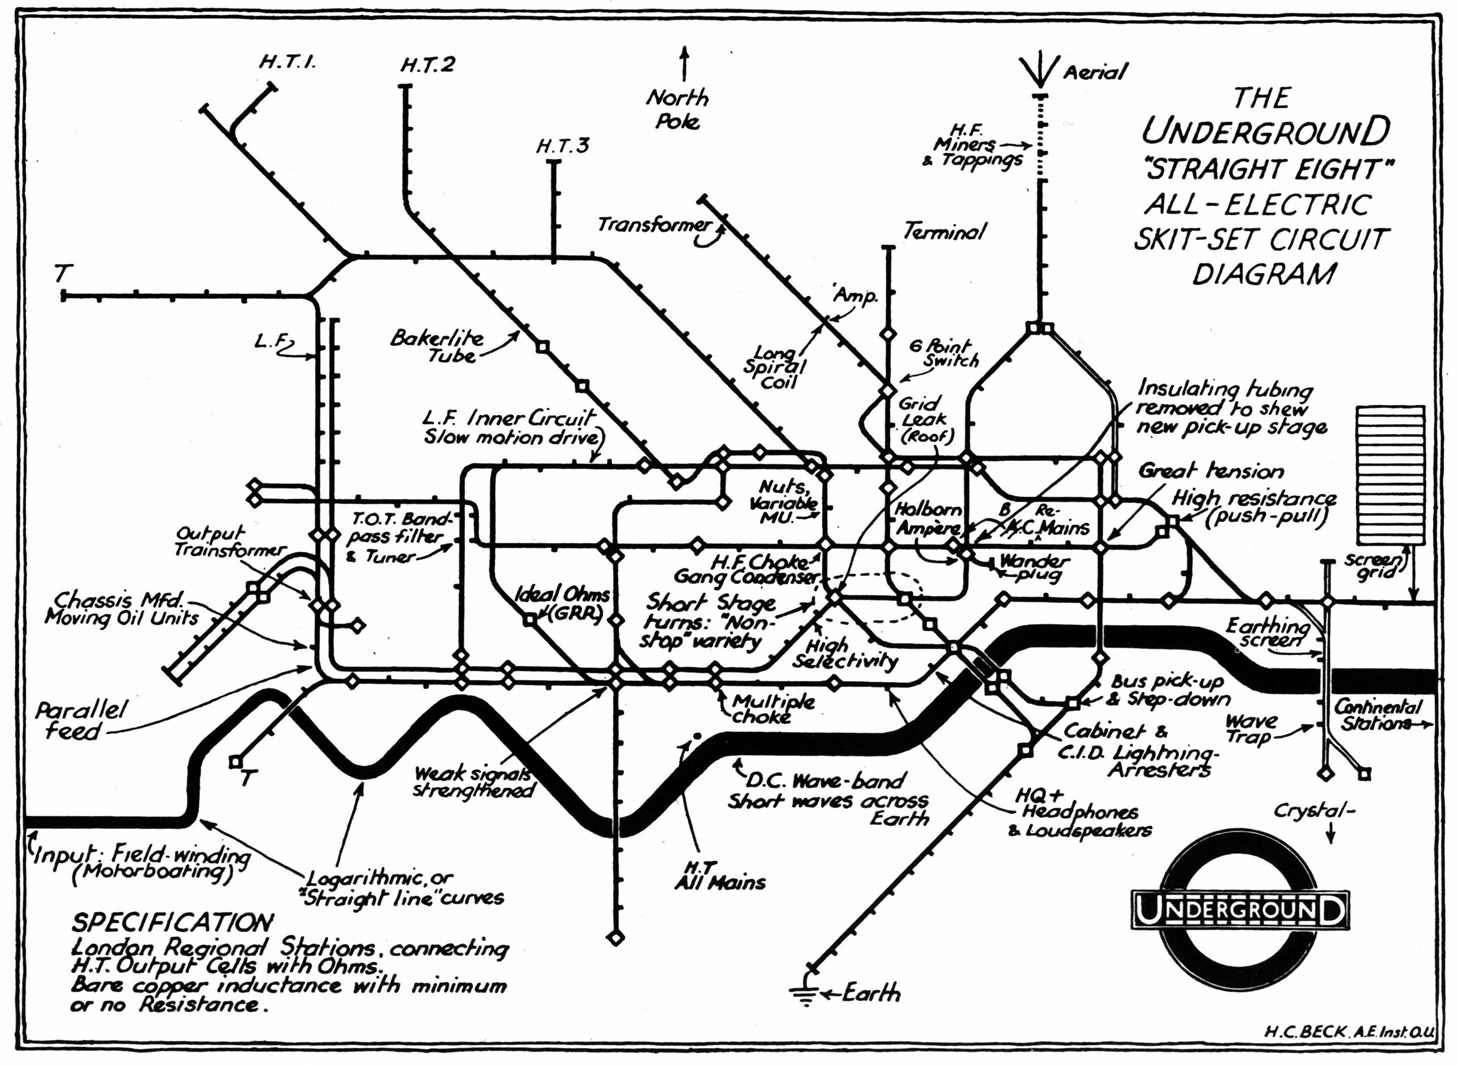 Henry Charles Beck Material Culture And The London Tube Map Of 1933 Wiring Diagram Don39t Pay Any Attention To Note On 4 Underground Straight Eight All Electric Skit Set Circuit March Drawing In Train Omnibus Tram Staff Magazine